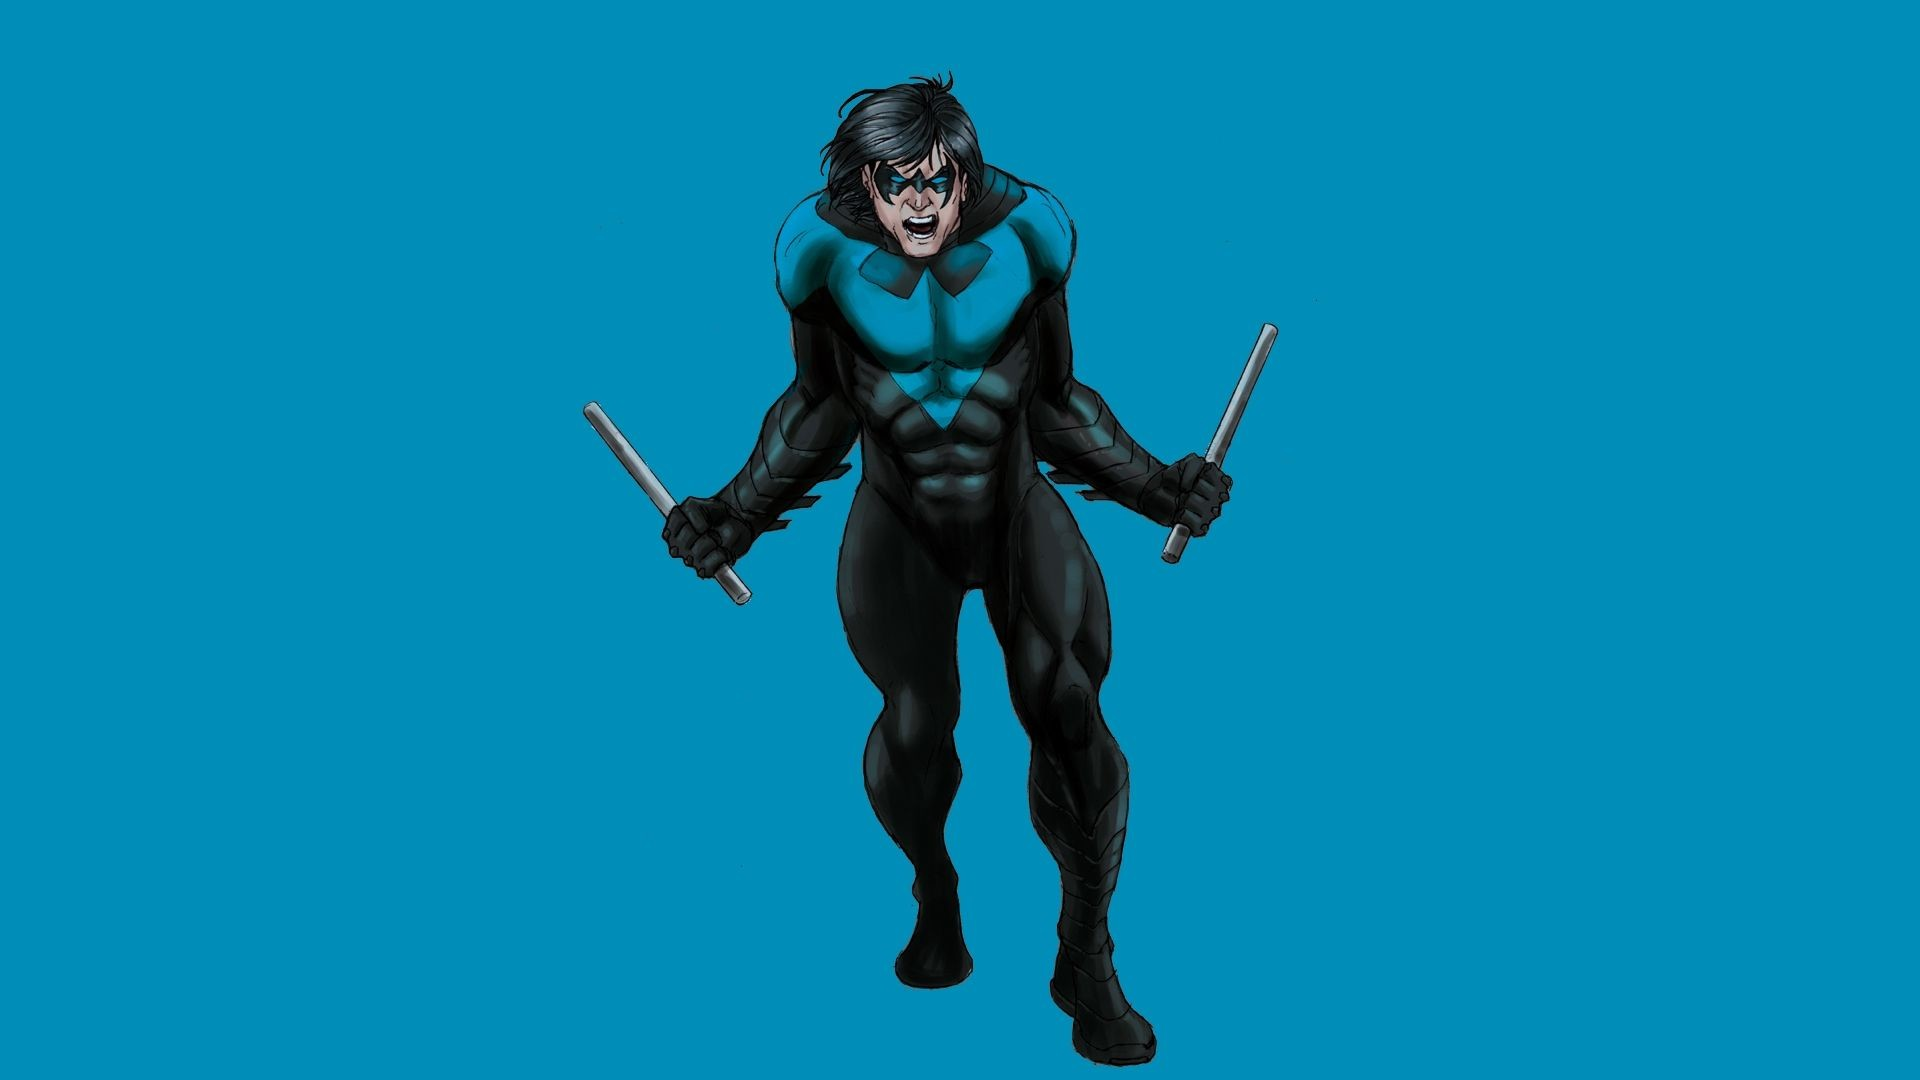 Res: 1920x1080, Nightwing Wallpapers Wallpaper Cave